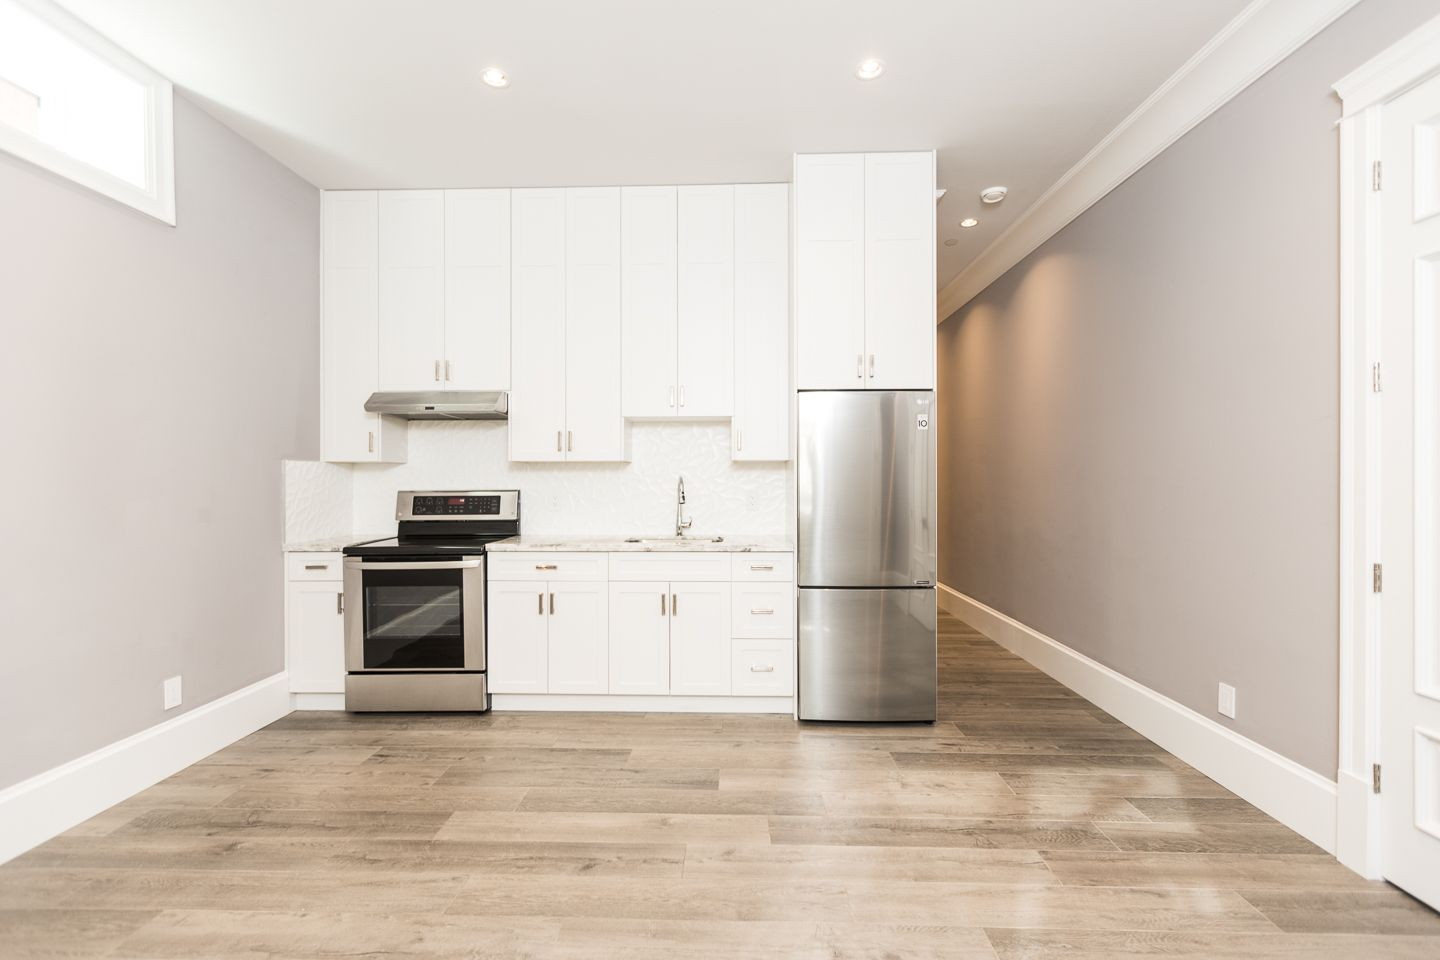 Photo 45: Photos: 1744 WEST 61ST AVE in VANCOUVER: South Granville House for sale (Vancouver West)  : MLS®# R2546980